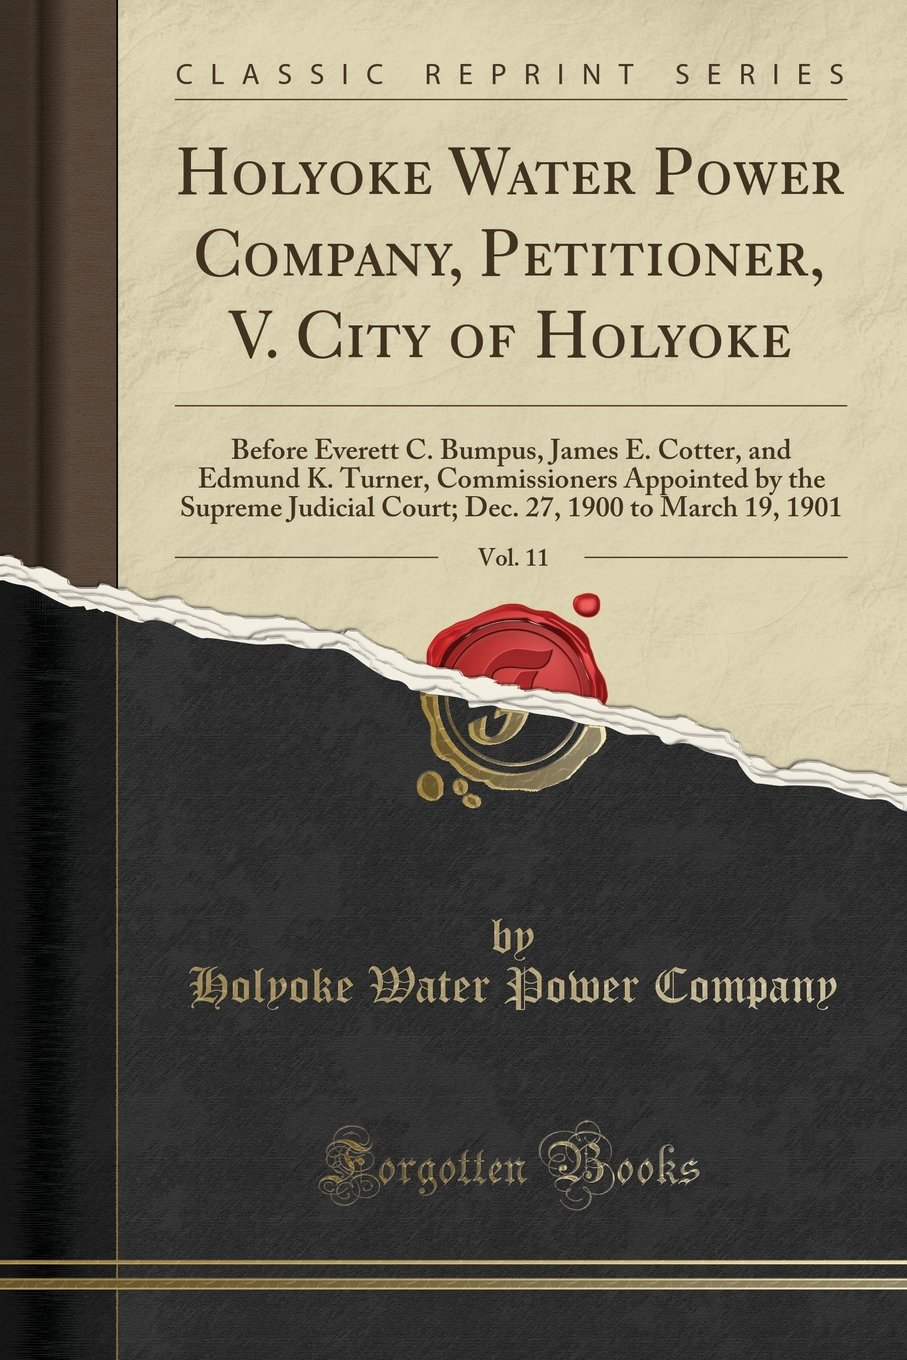 Holyoke Water Power Company, Petitioner, V. City of Holyoke, Vol. 11: Before Everett C. Bumpus, James E. Cotter, and Edmund K. Turner, Commissioners ... 27, 1900 to March 19, 1901 (Classic Reprint) pdf epub